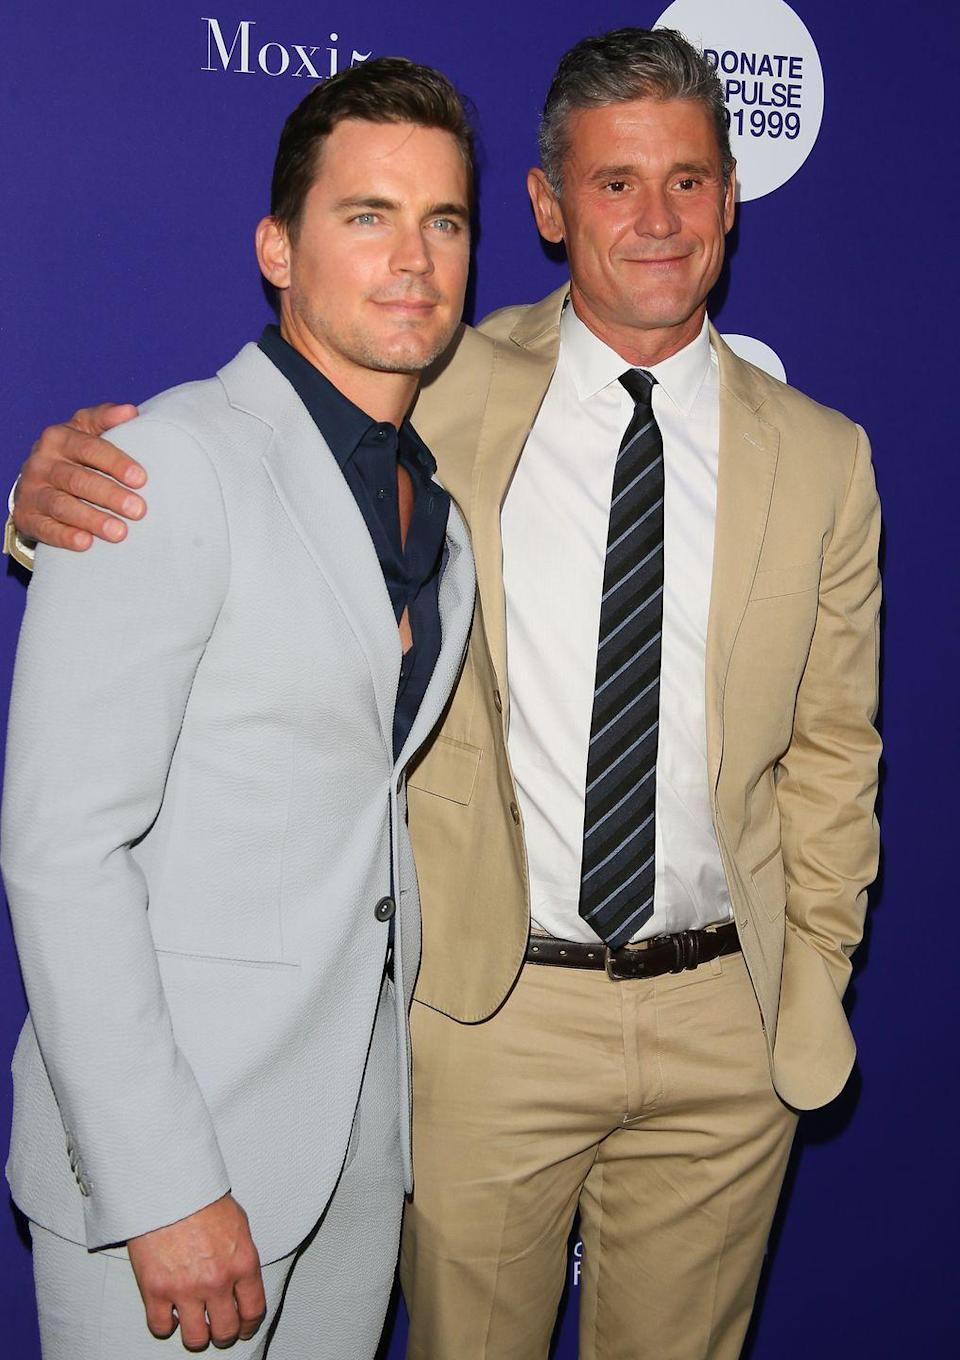 """<p><strong>Age gap: </strong>13 years</p><p>Matt wed his publicist, Simon, in 2011. Now the two share three sons together. When asked about his secret to a happy marriage, Matt told <a href=""""https://www.etonline.com/matt-bomer-shares-the-secrets-behind-his-long-lasting-marriage-exclusive-98814"""" rel=""""nofollow noopener"""" target=""""_blank"""" data-ylk=""""slk:Entertainment Tonight"""" class=""""link rapid-noclick-resp""""><em>Entertainment Tonight</em></a> that the couple tries to take everything """"one day at a time.""""</p>"""